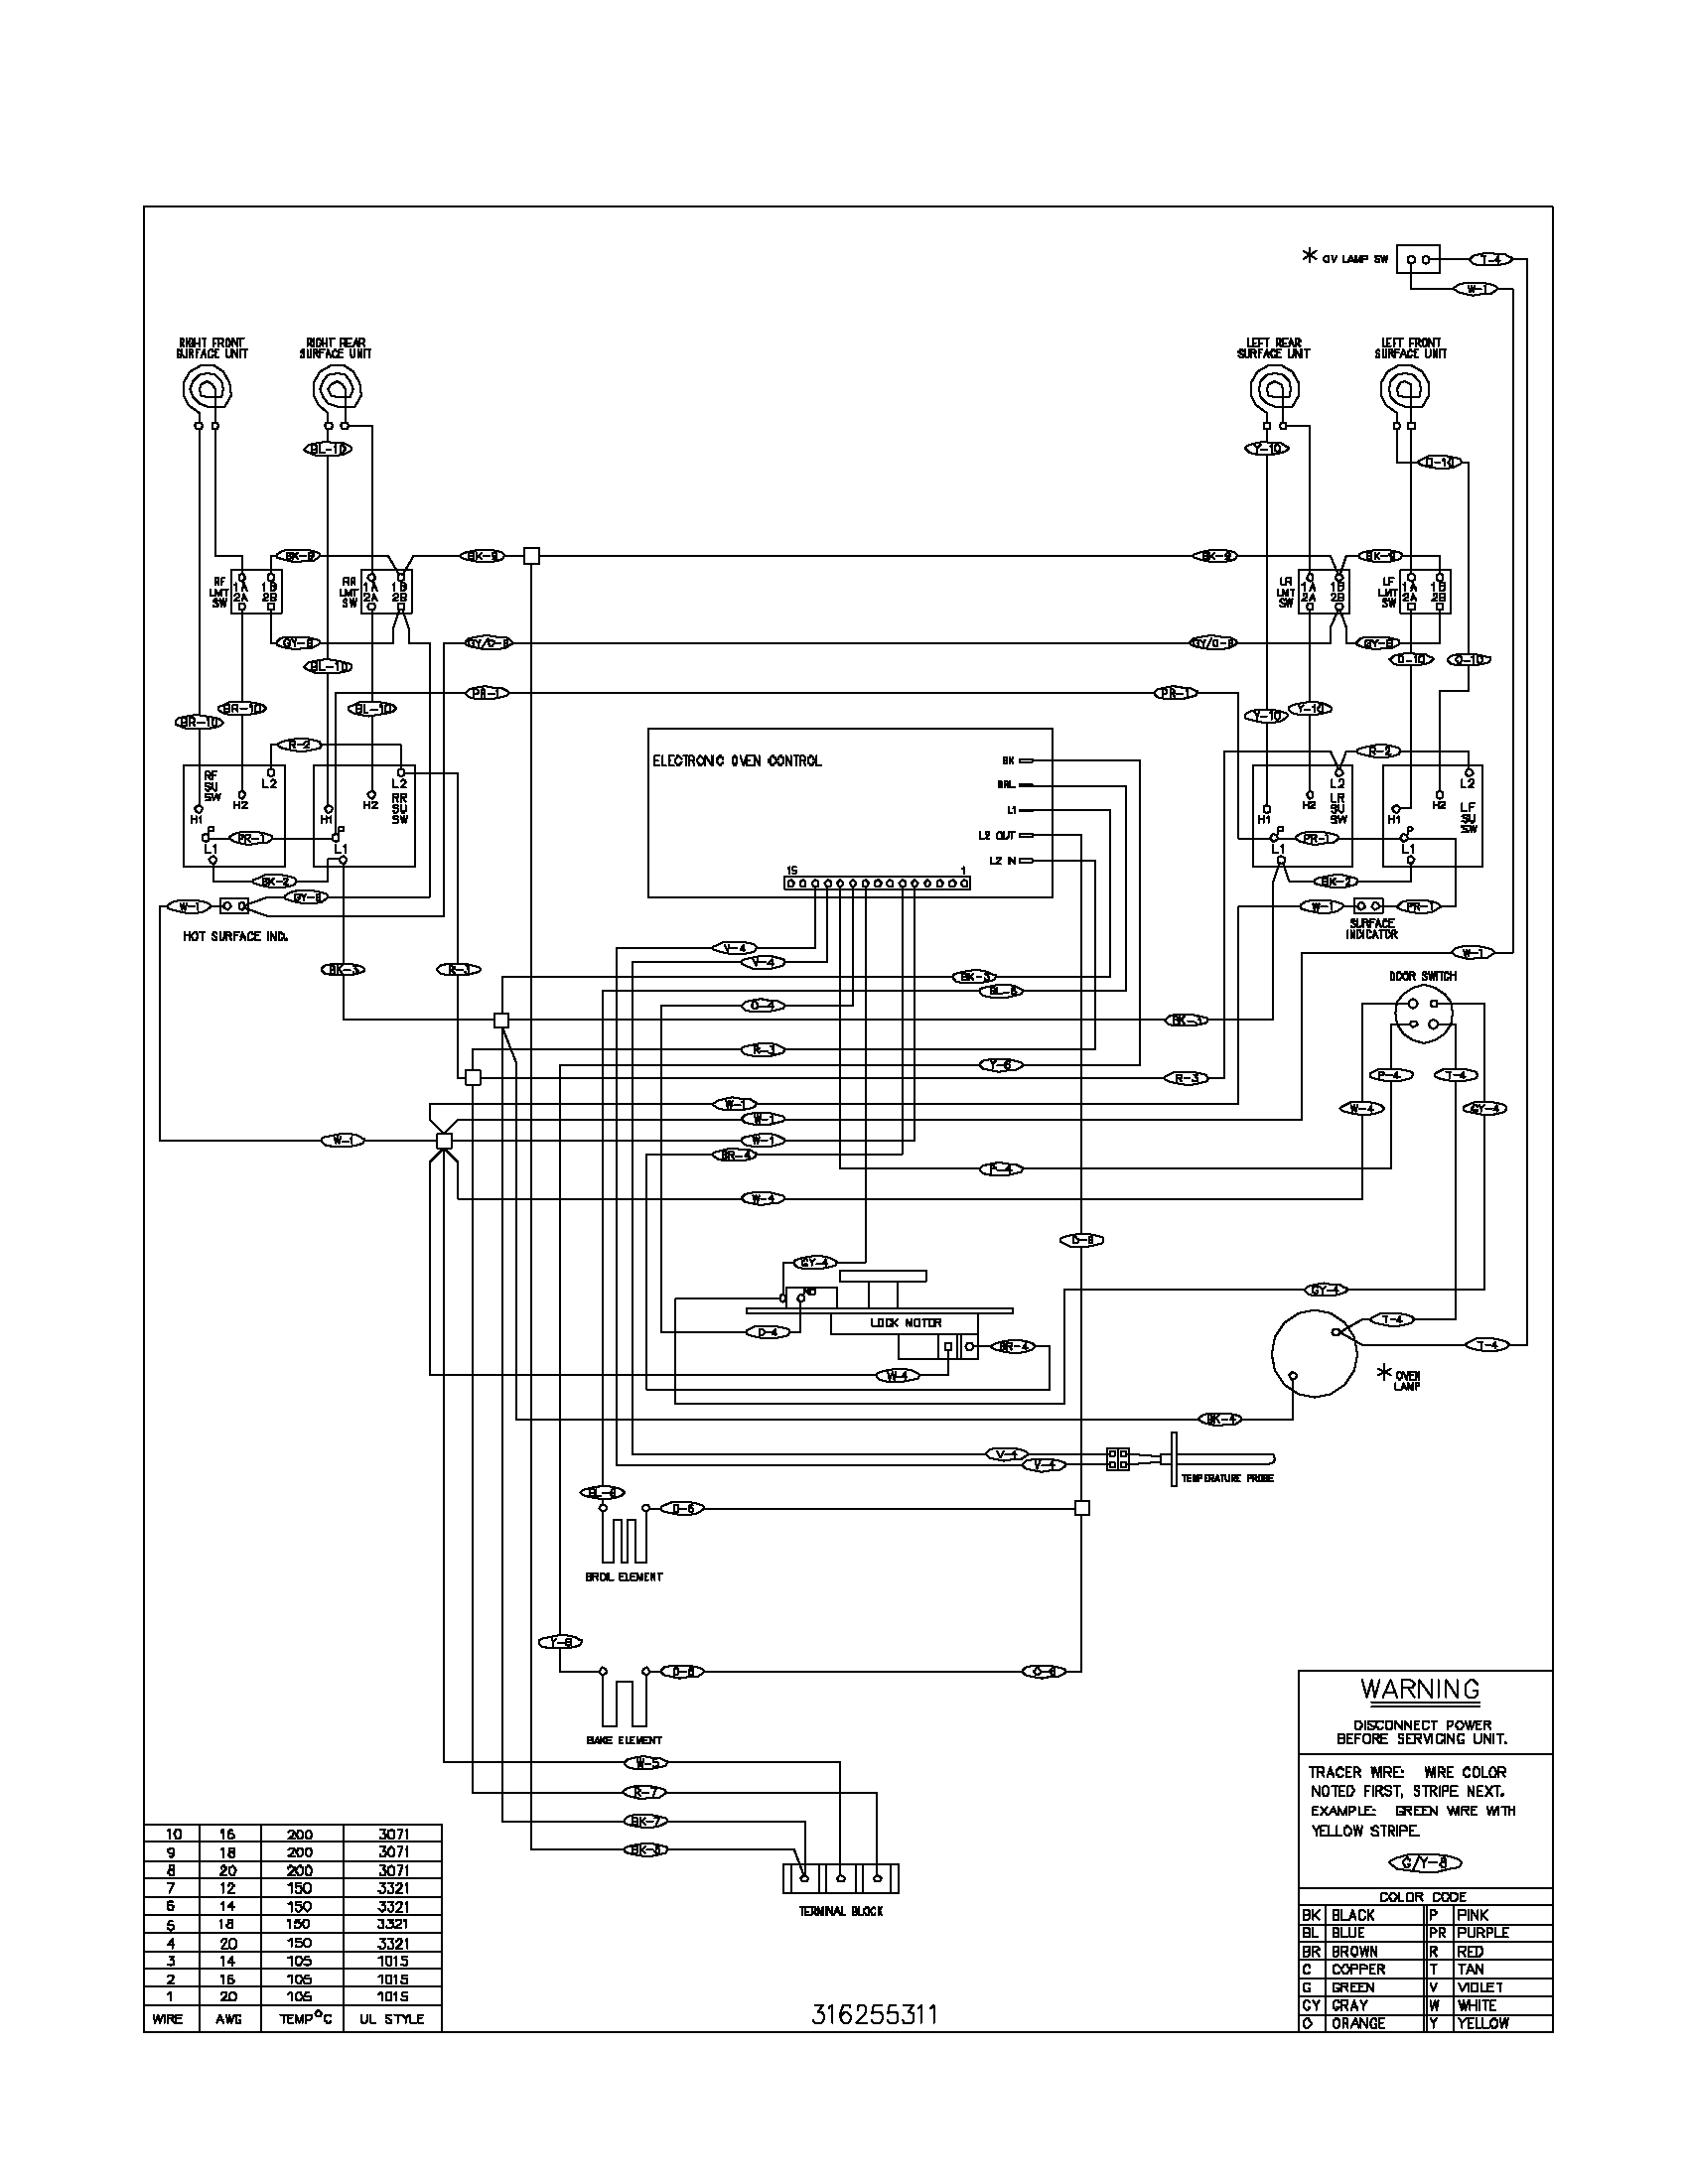 frigidaire oven wiring diagram wiring diagram val wiring diagram for a frigidaire oven wiring diagram for frigidaire oven [ 1700 x 2200 Pixel ]